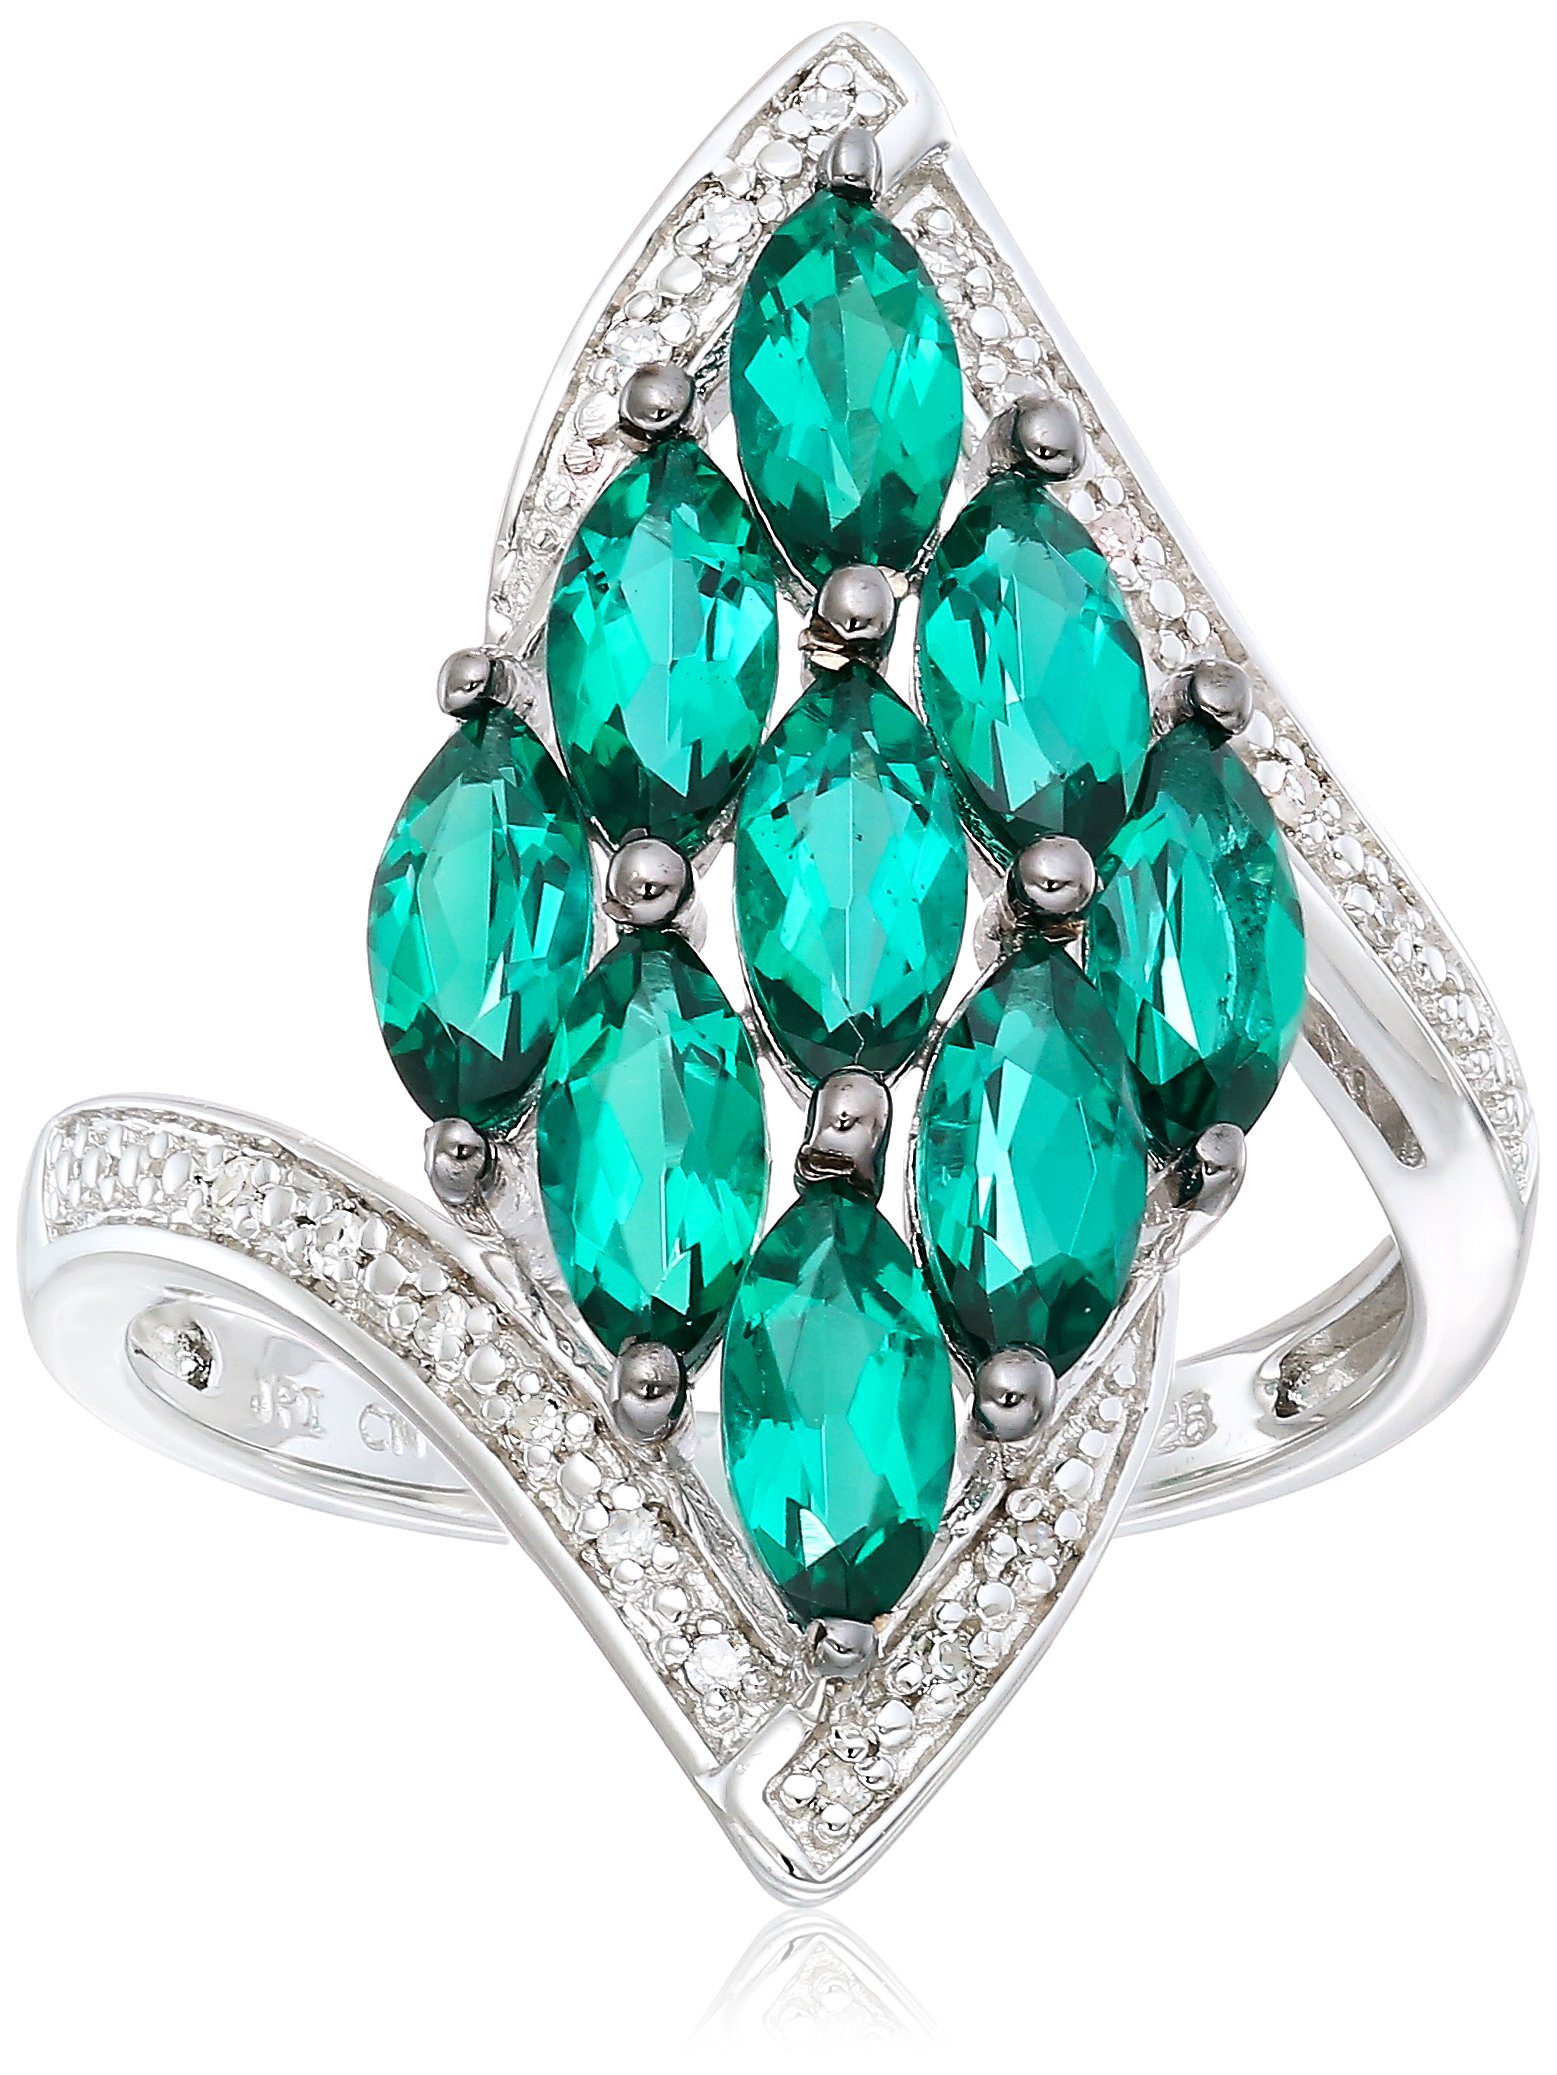 Black Rhodium Plated Sterling Silver Bypass Marquise Created Emerald Diamond Accent Ring, Size 7